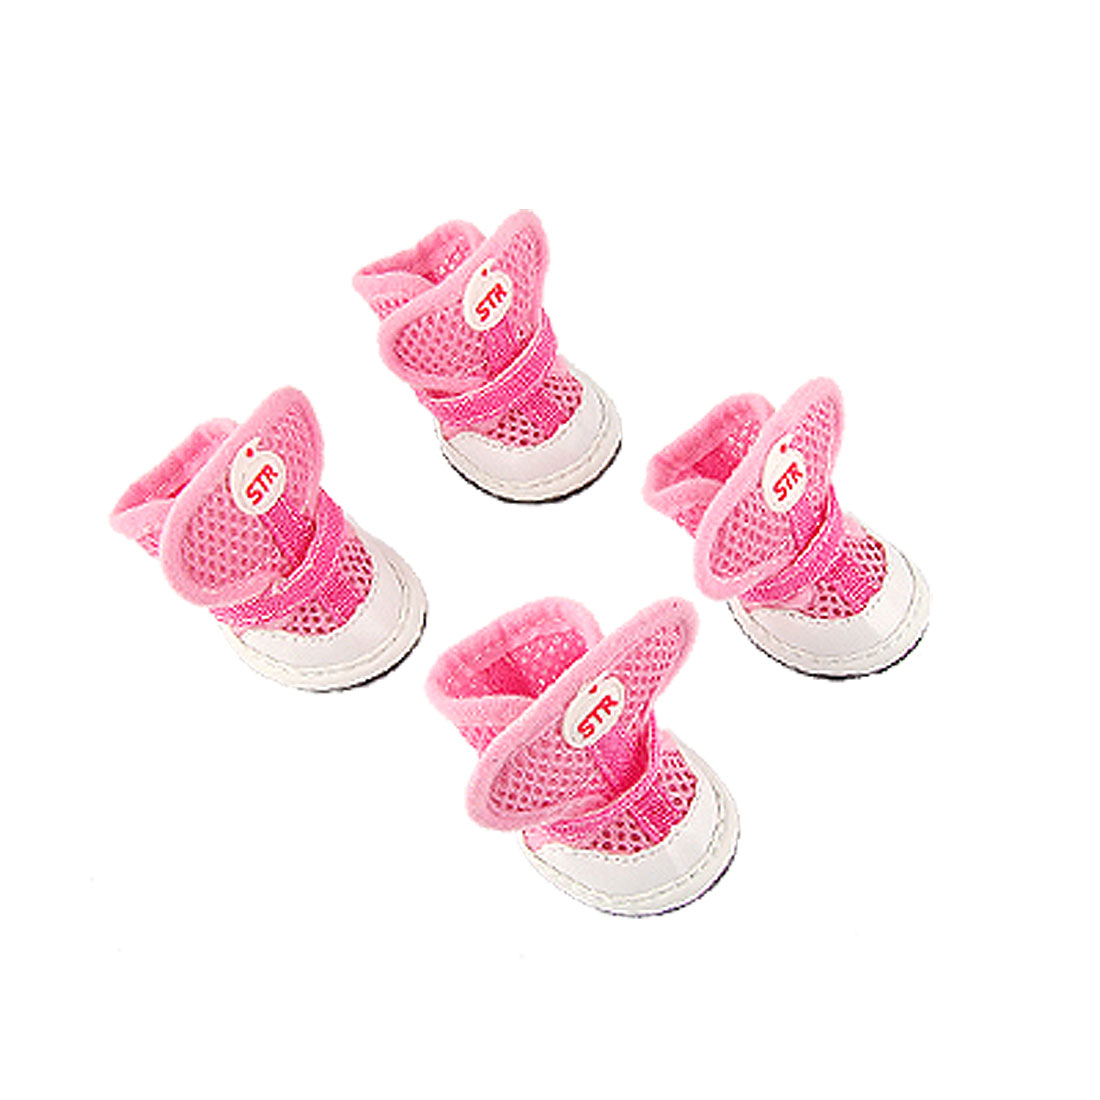 Dog Antislip Rubber Sole Adjustable Strap Air Mesh Pink Shoes 1